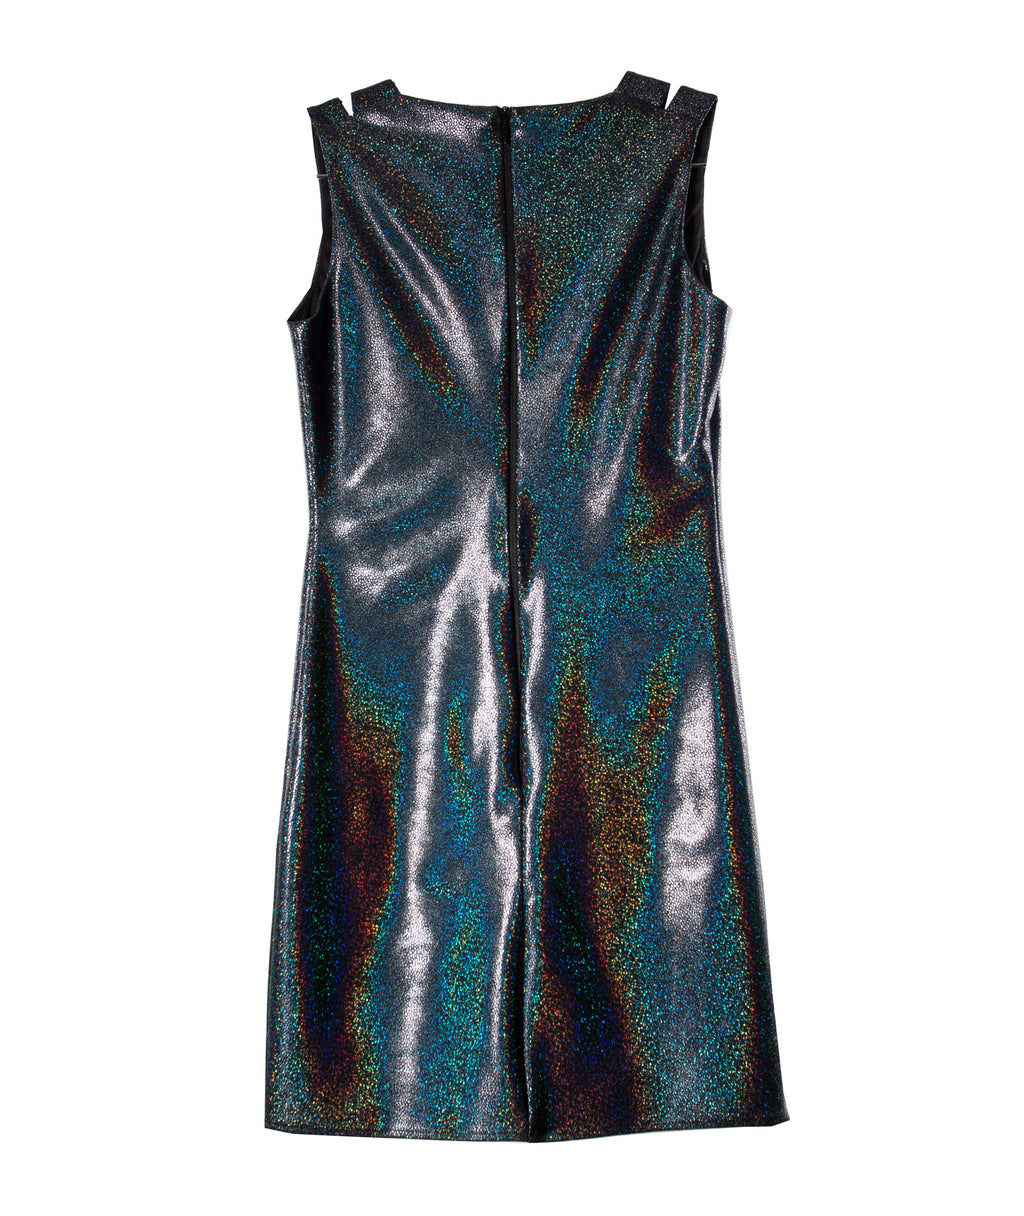 By Debra Girls Wet Look Straight Dress